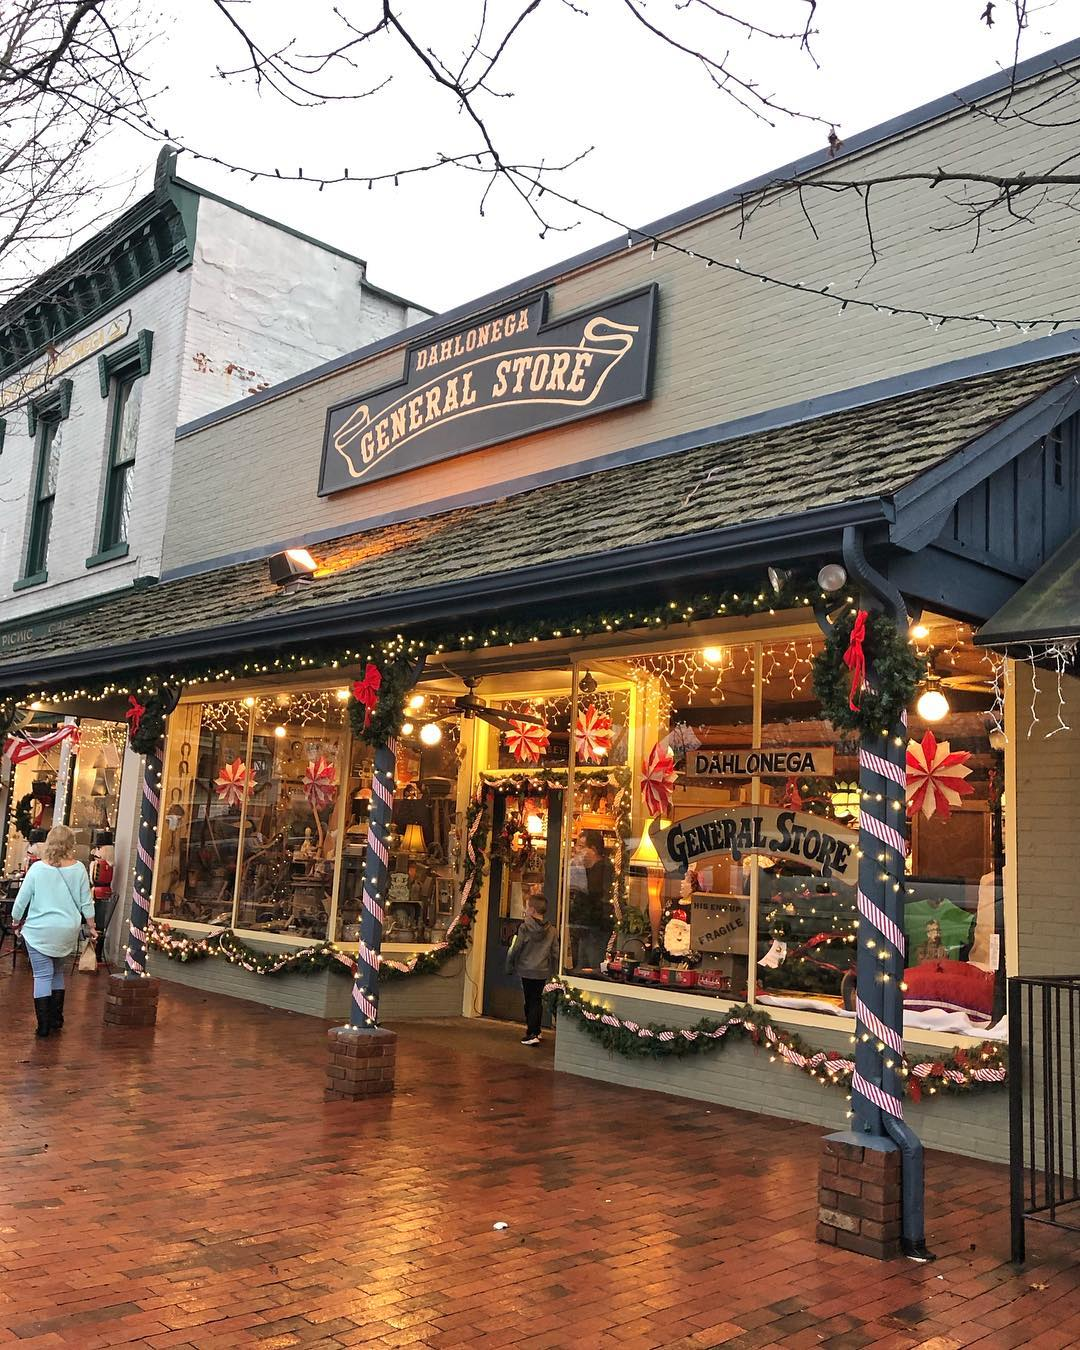 Christmas Town In Georgia Dahlonega.The Most Charming Small Towns To Visit During The Christmas